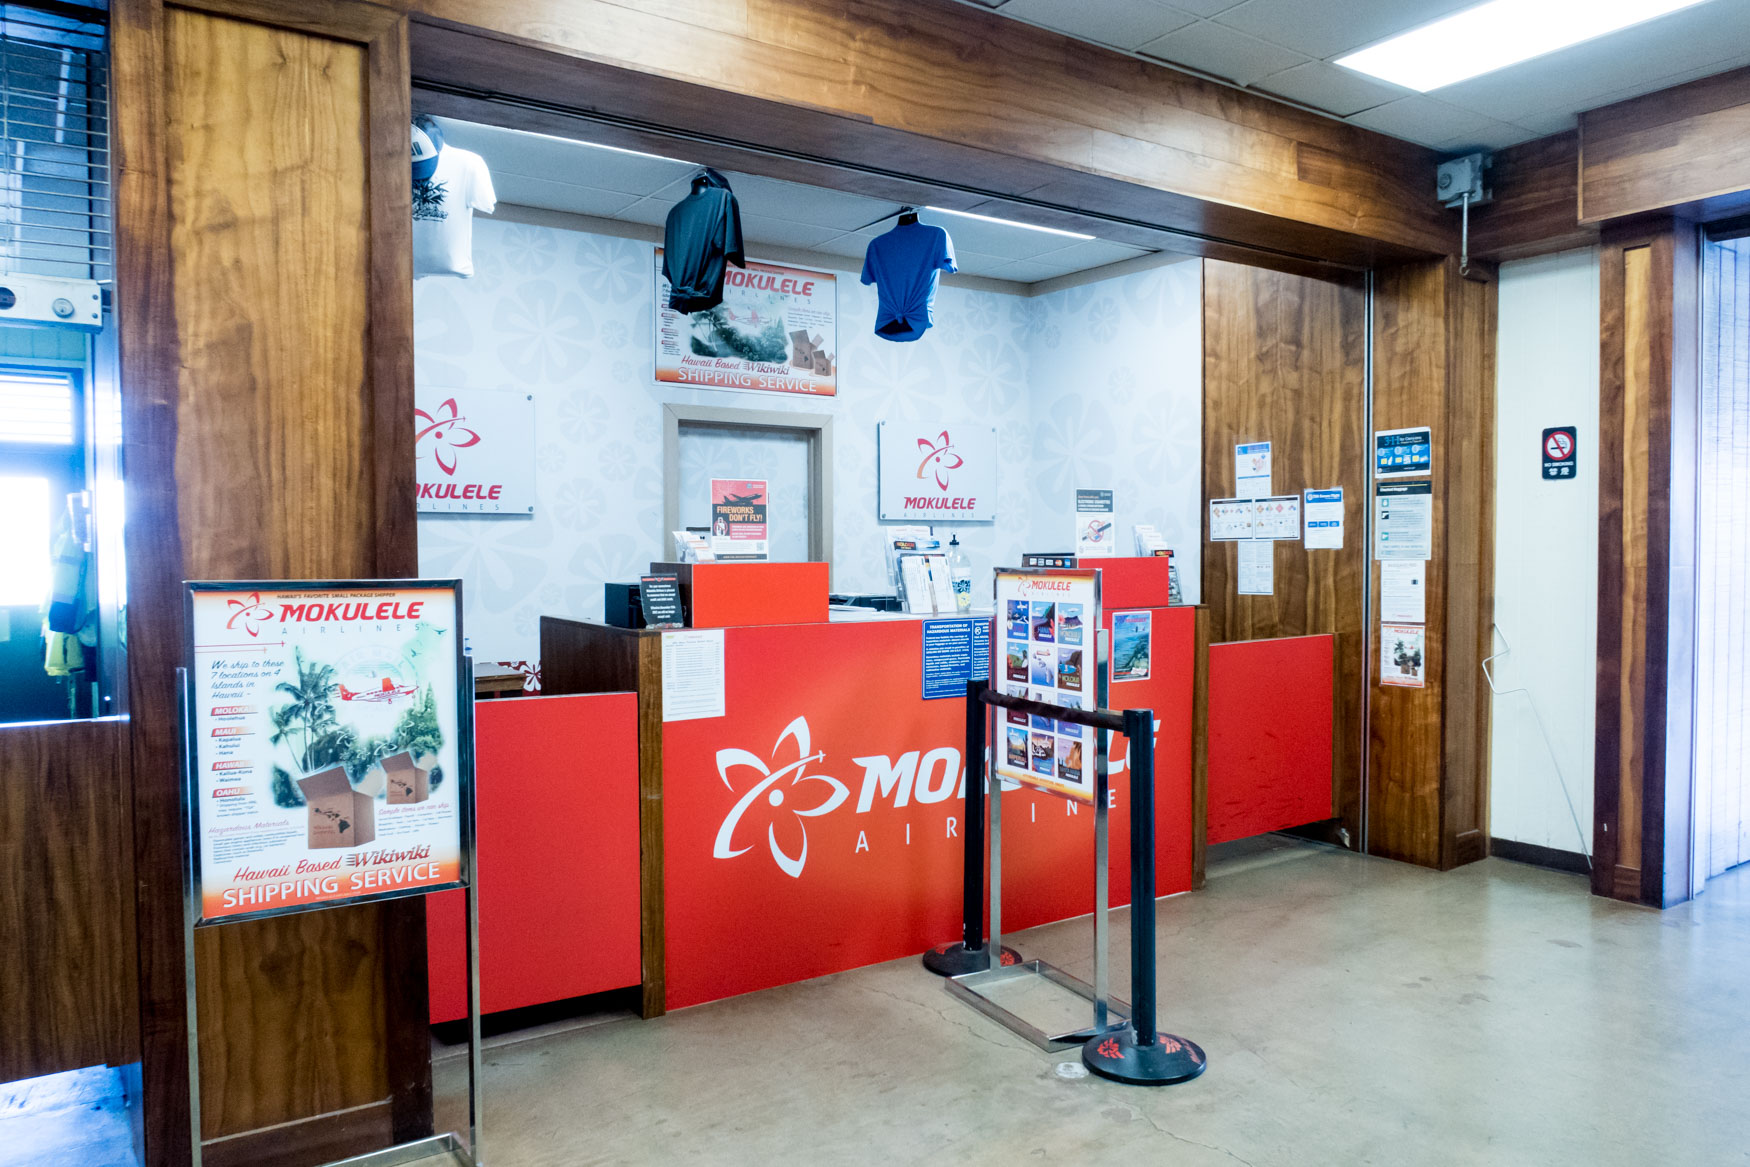 Mokulele Airlines Check-In Counter